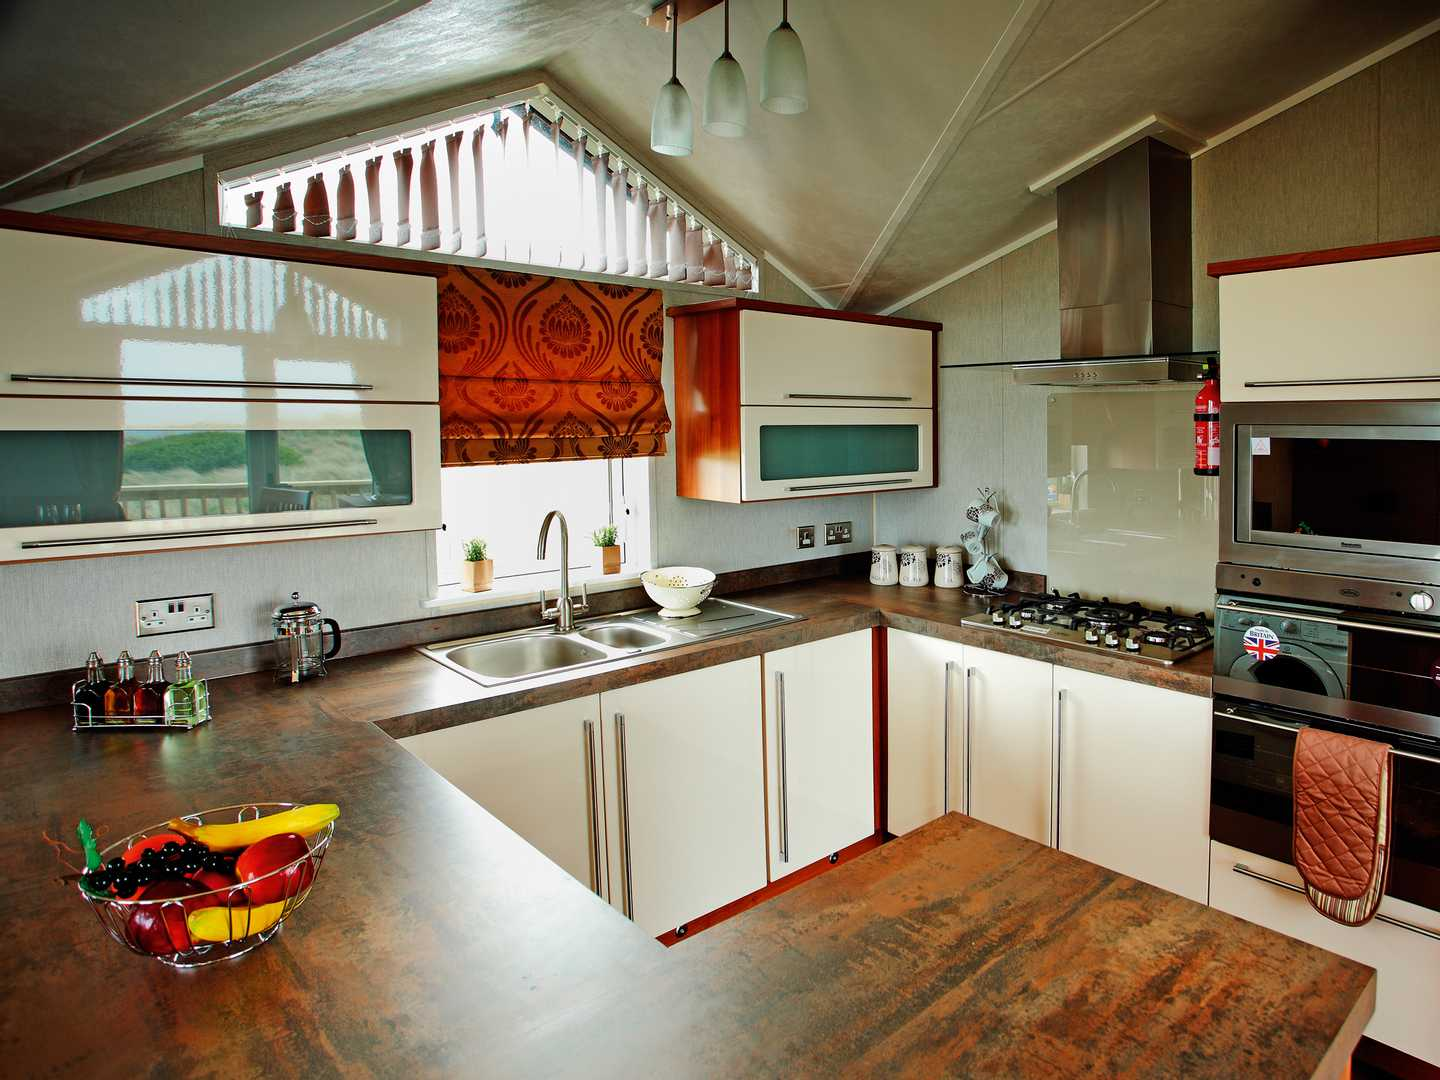 Interior of a kitchen in a Luxury Lodge